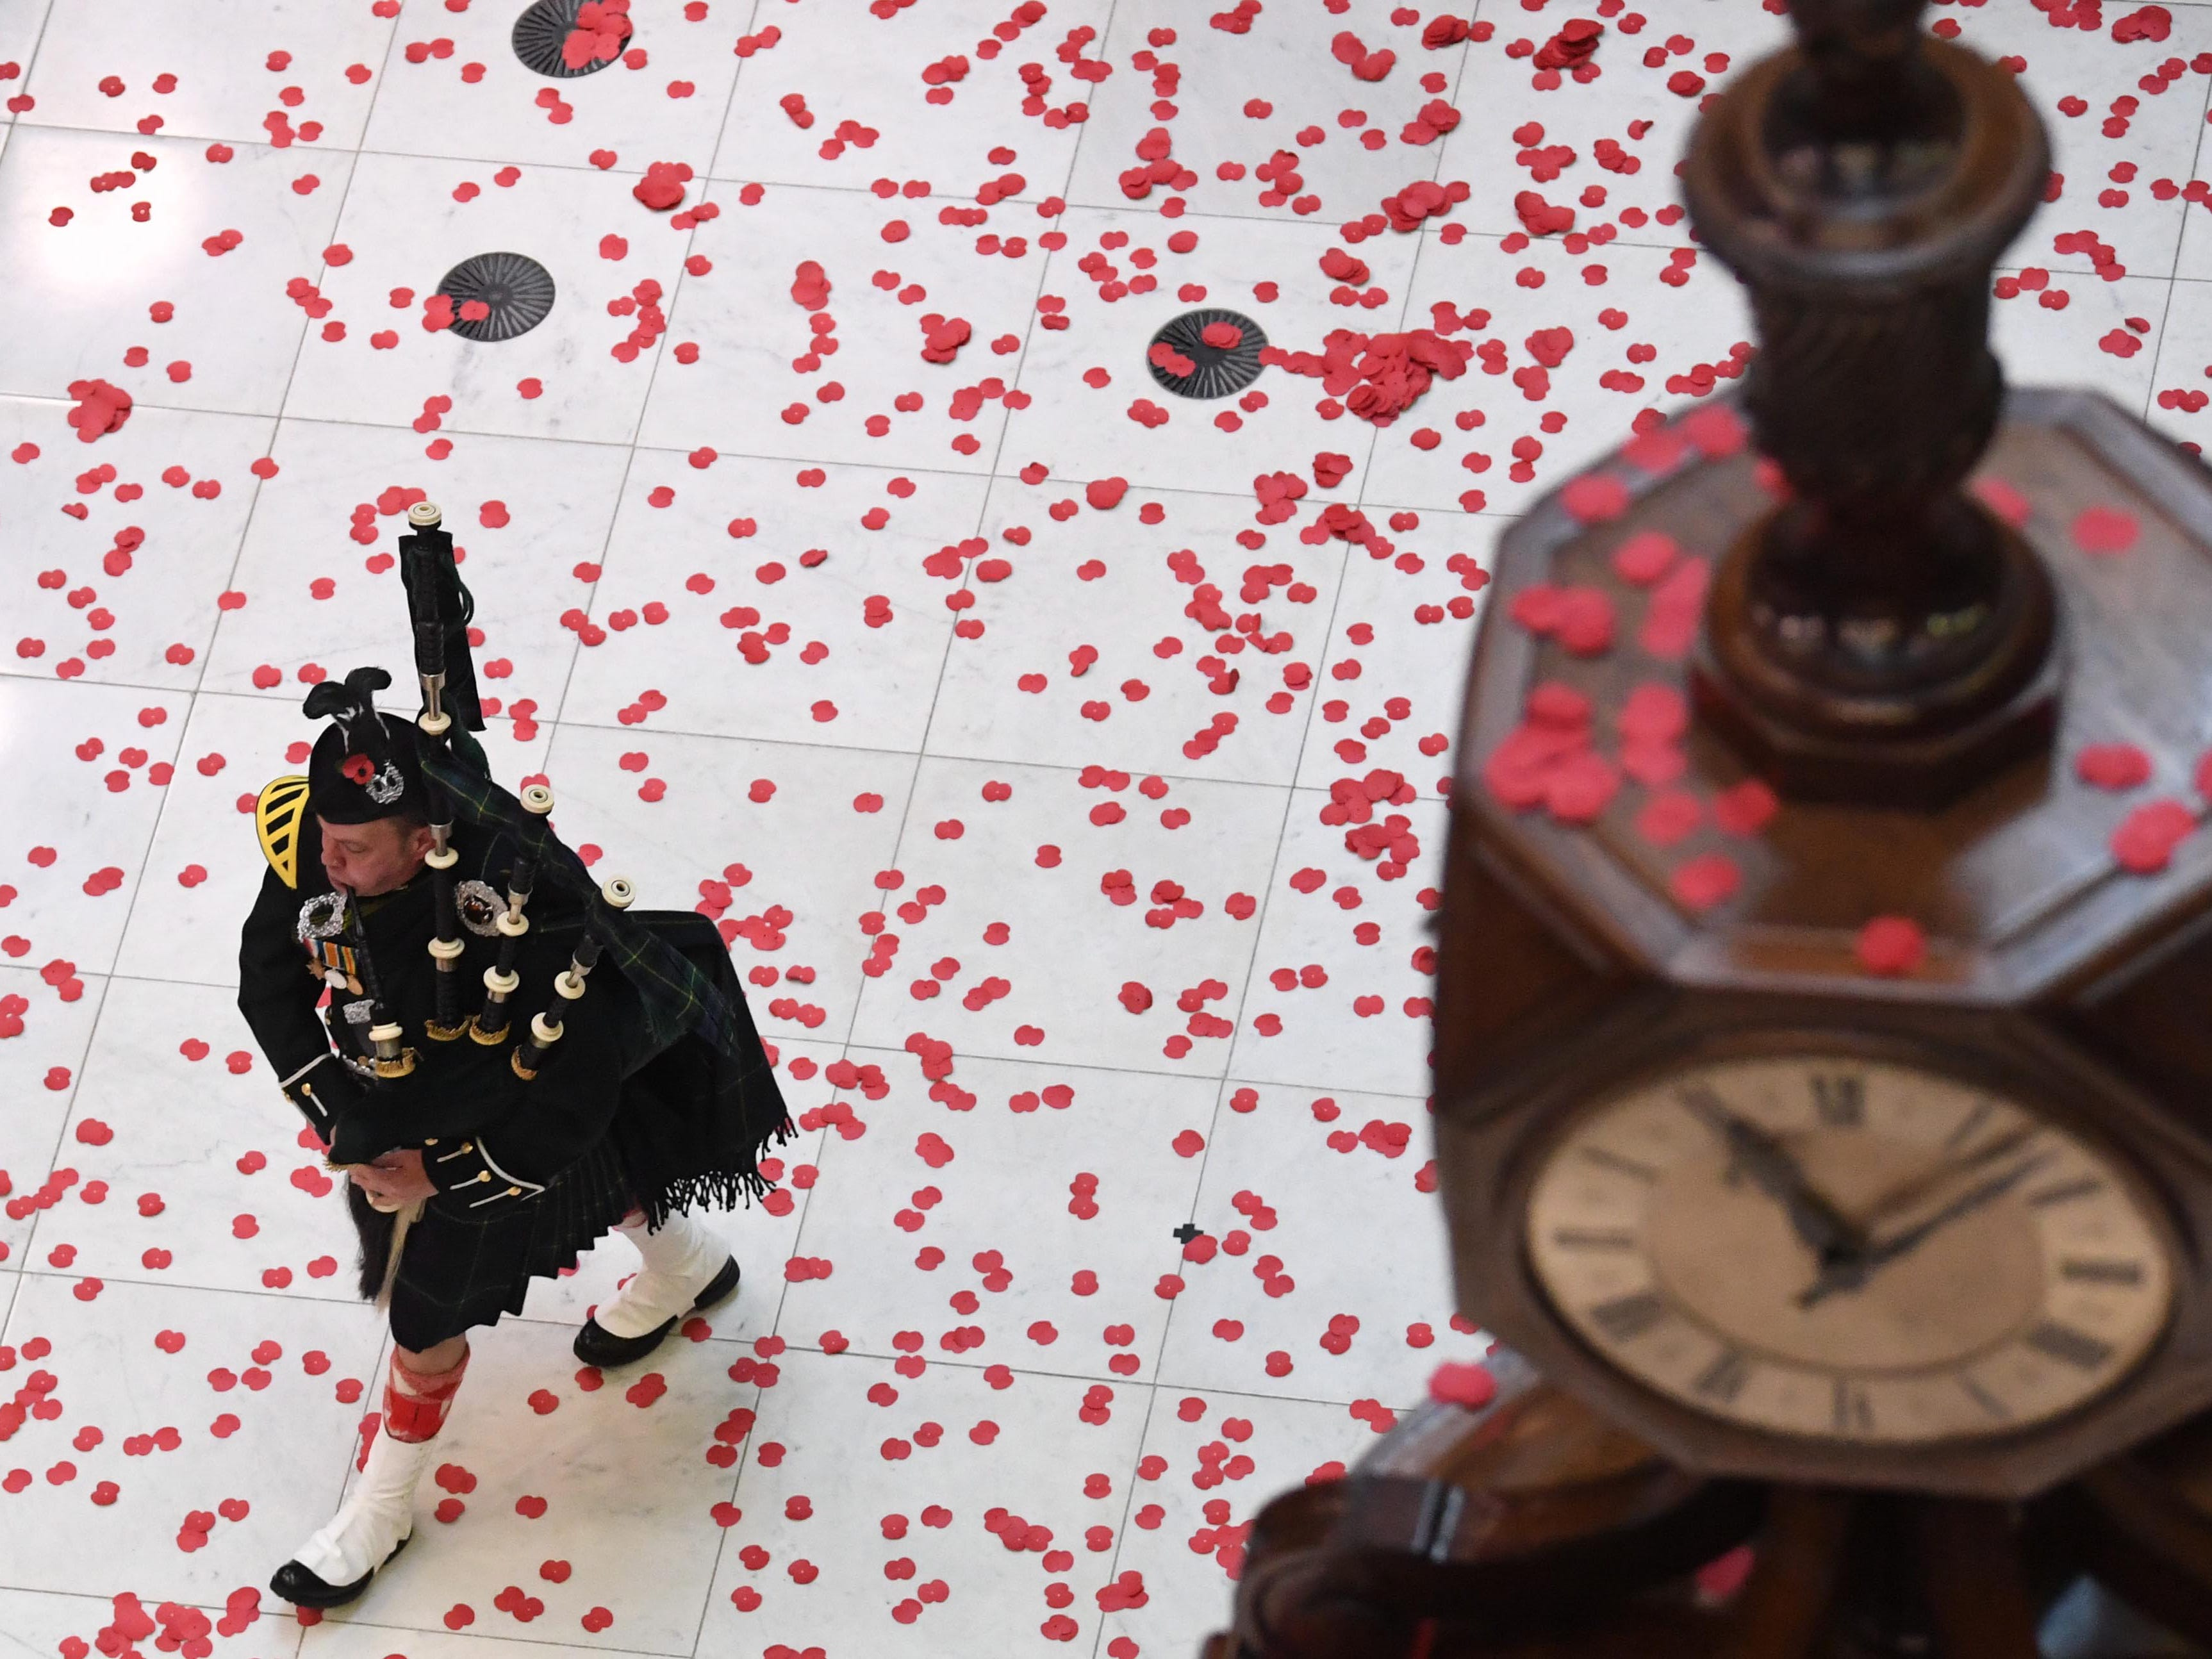 epa07153076 Poppies fall on a Scottish piper during the annual Remembrance Day Armistice commemoration service at Lloyds of London, in the City of London, Britain, 09 November 2018. The 11 November 2018 marks the 100th anniversary of the First World War Armistice with services taking place across the world to commemorate the occasion.  EPA-EFE/NEIL HALL ORG XMIT: NGH01